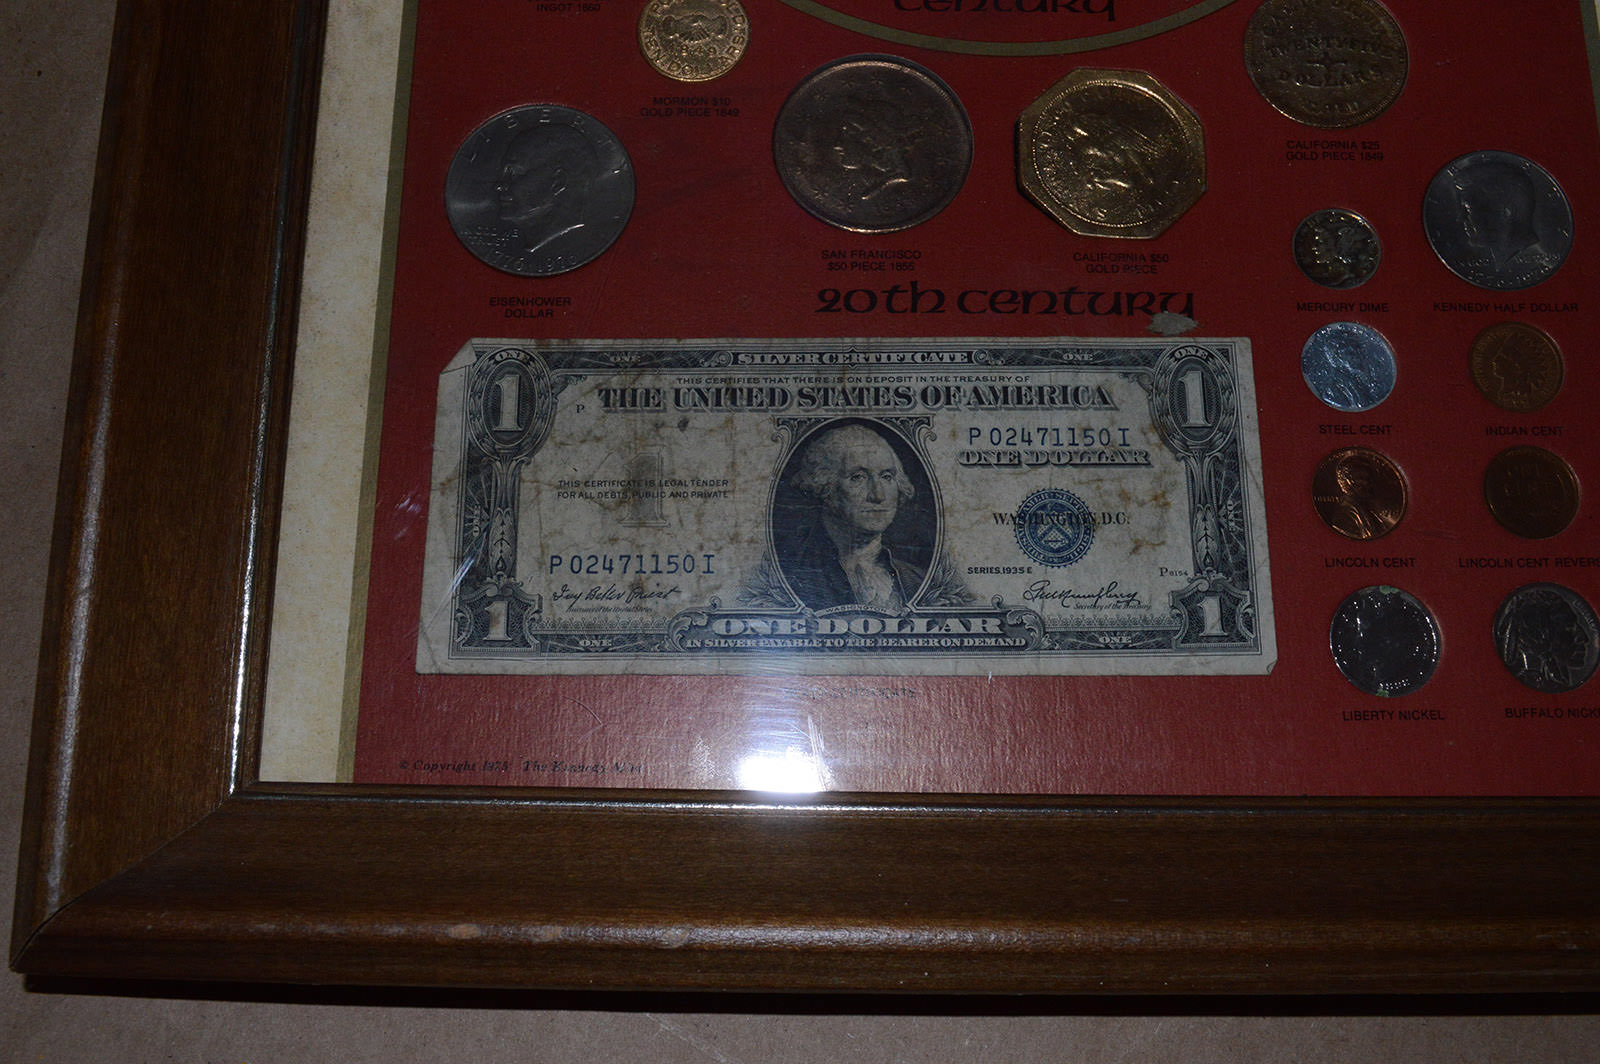 Framed Bicentennial Collection 18th 19th Amp 20th Century U S Coins Property Room